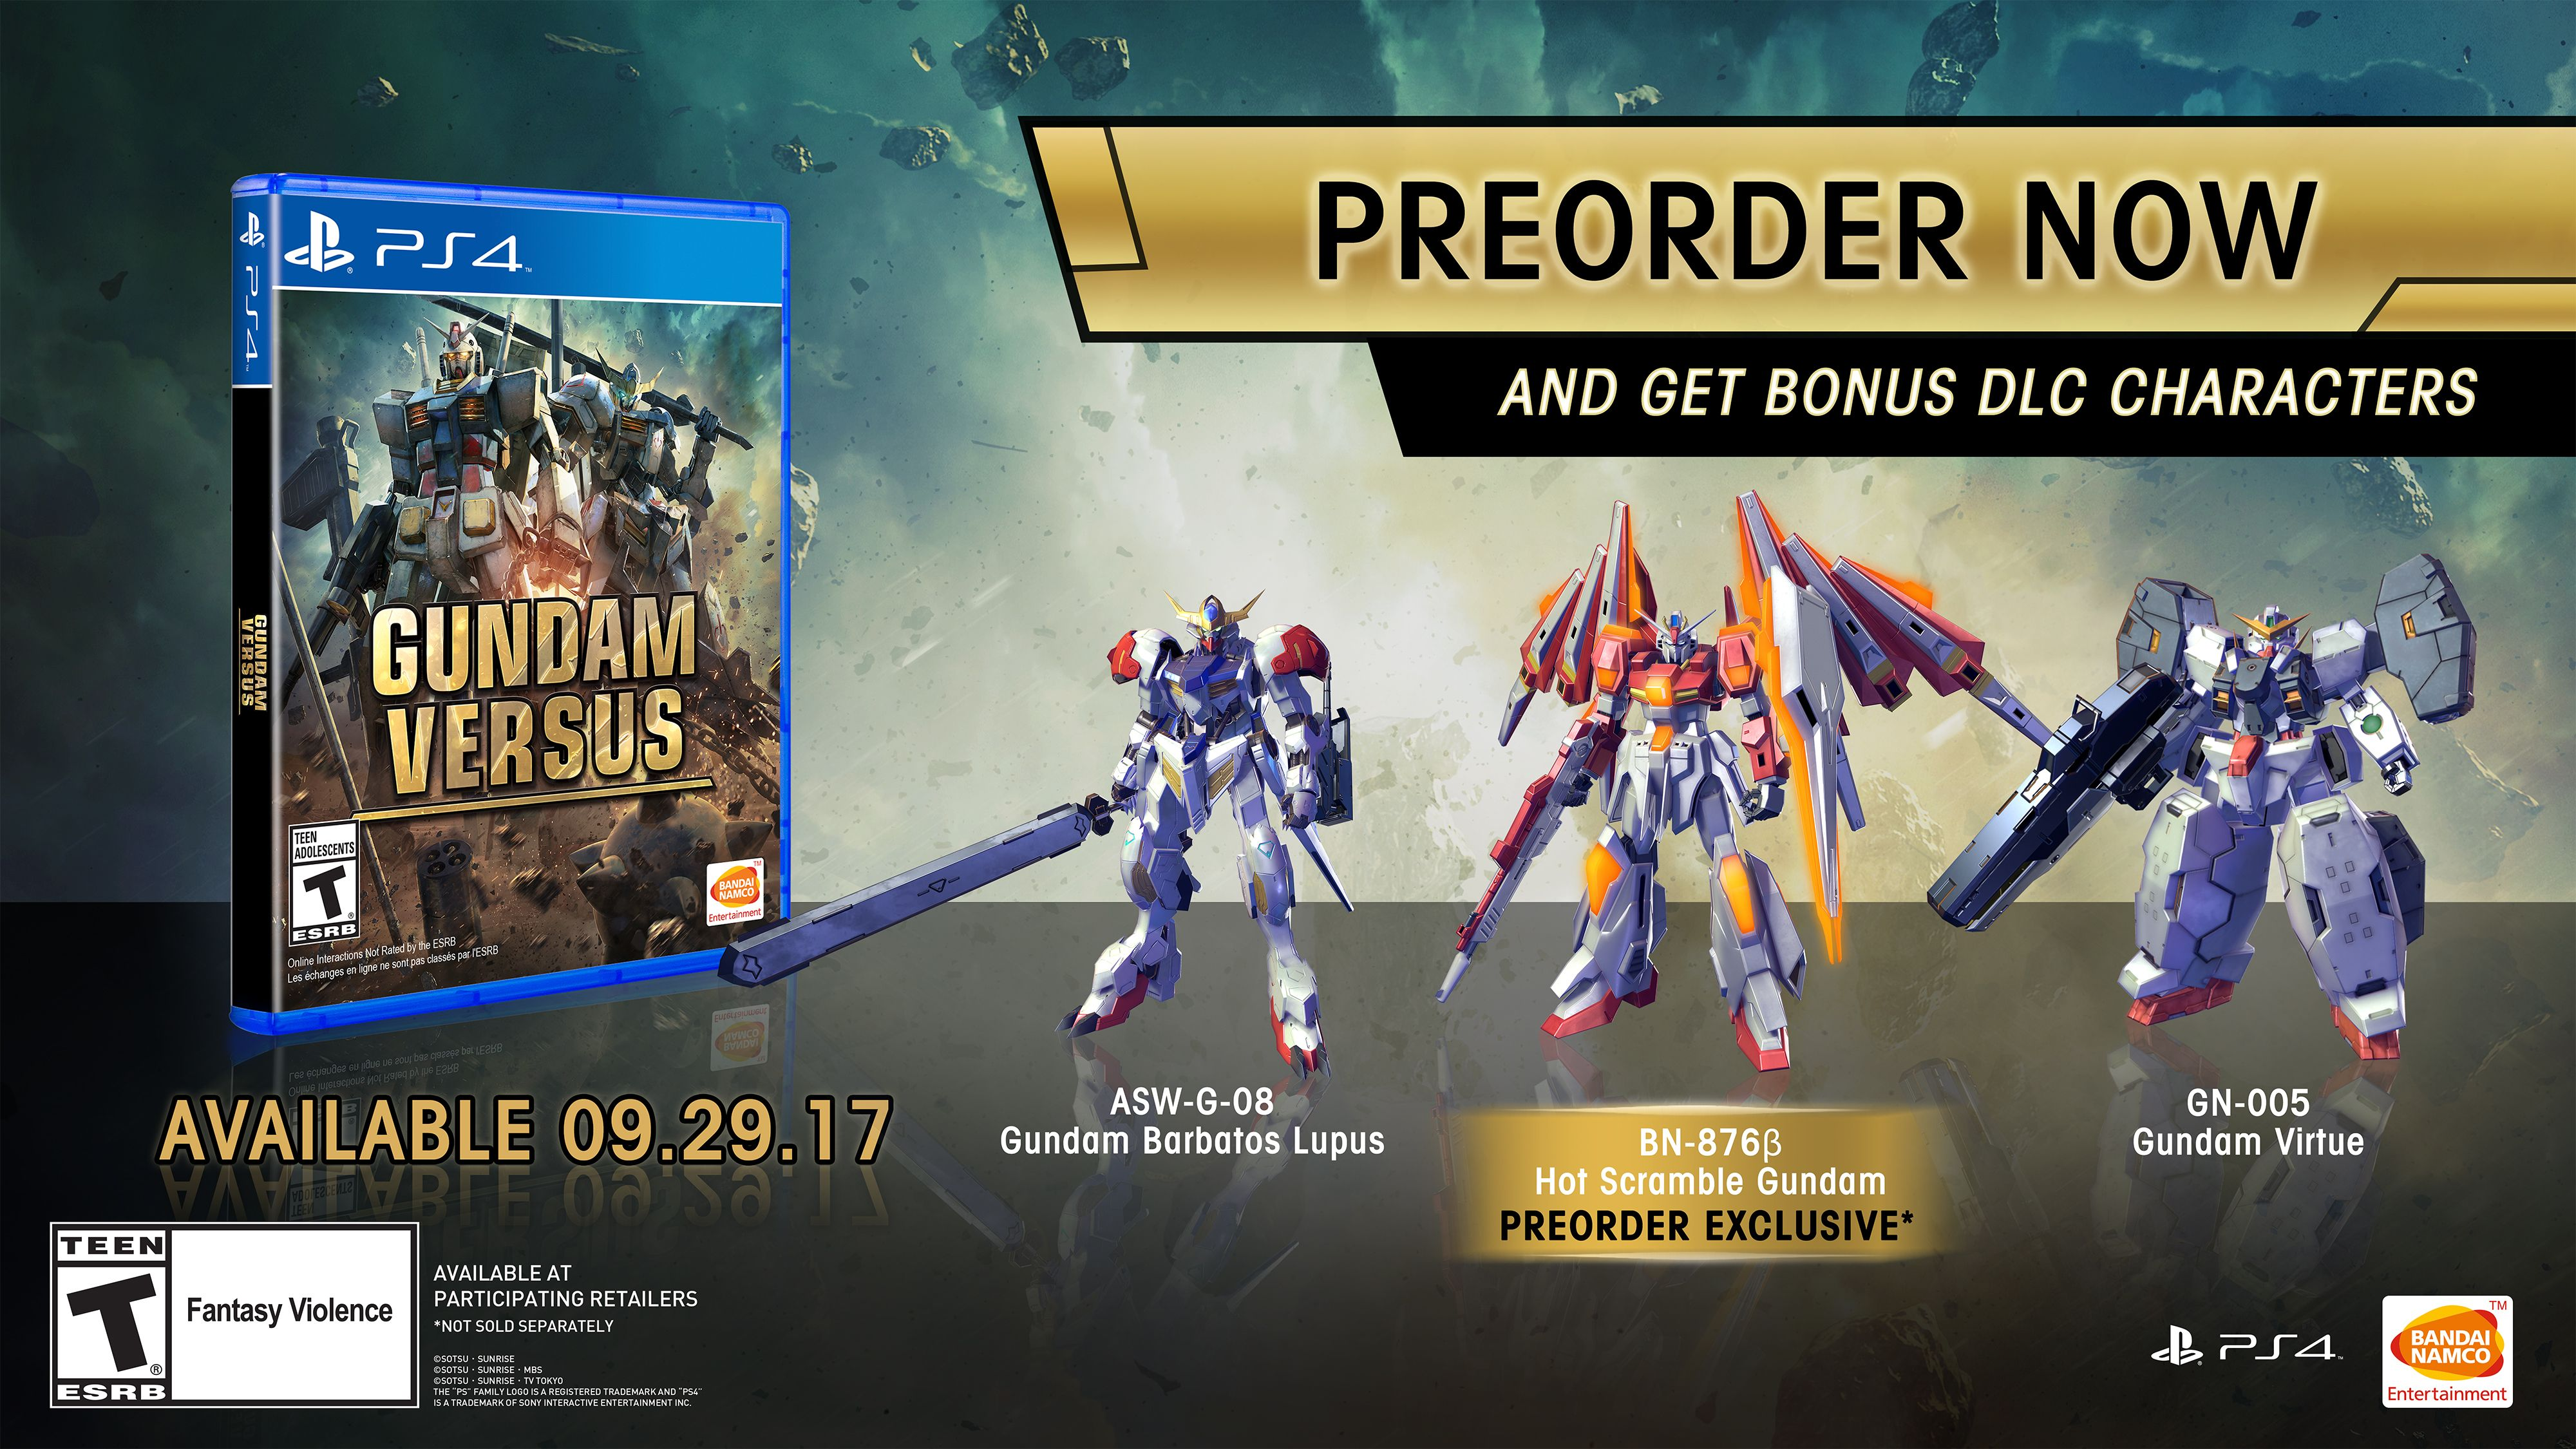 Pre order code recovery form - Bandai Namco Will Host An Open Beta For Gundam Versus Ahead Of Its Release In The Americas The Publisher Announced At Its San Diego Comic Con 2017 Fighting